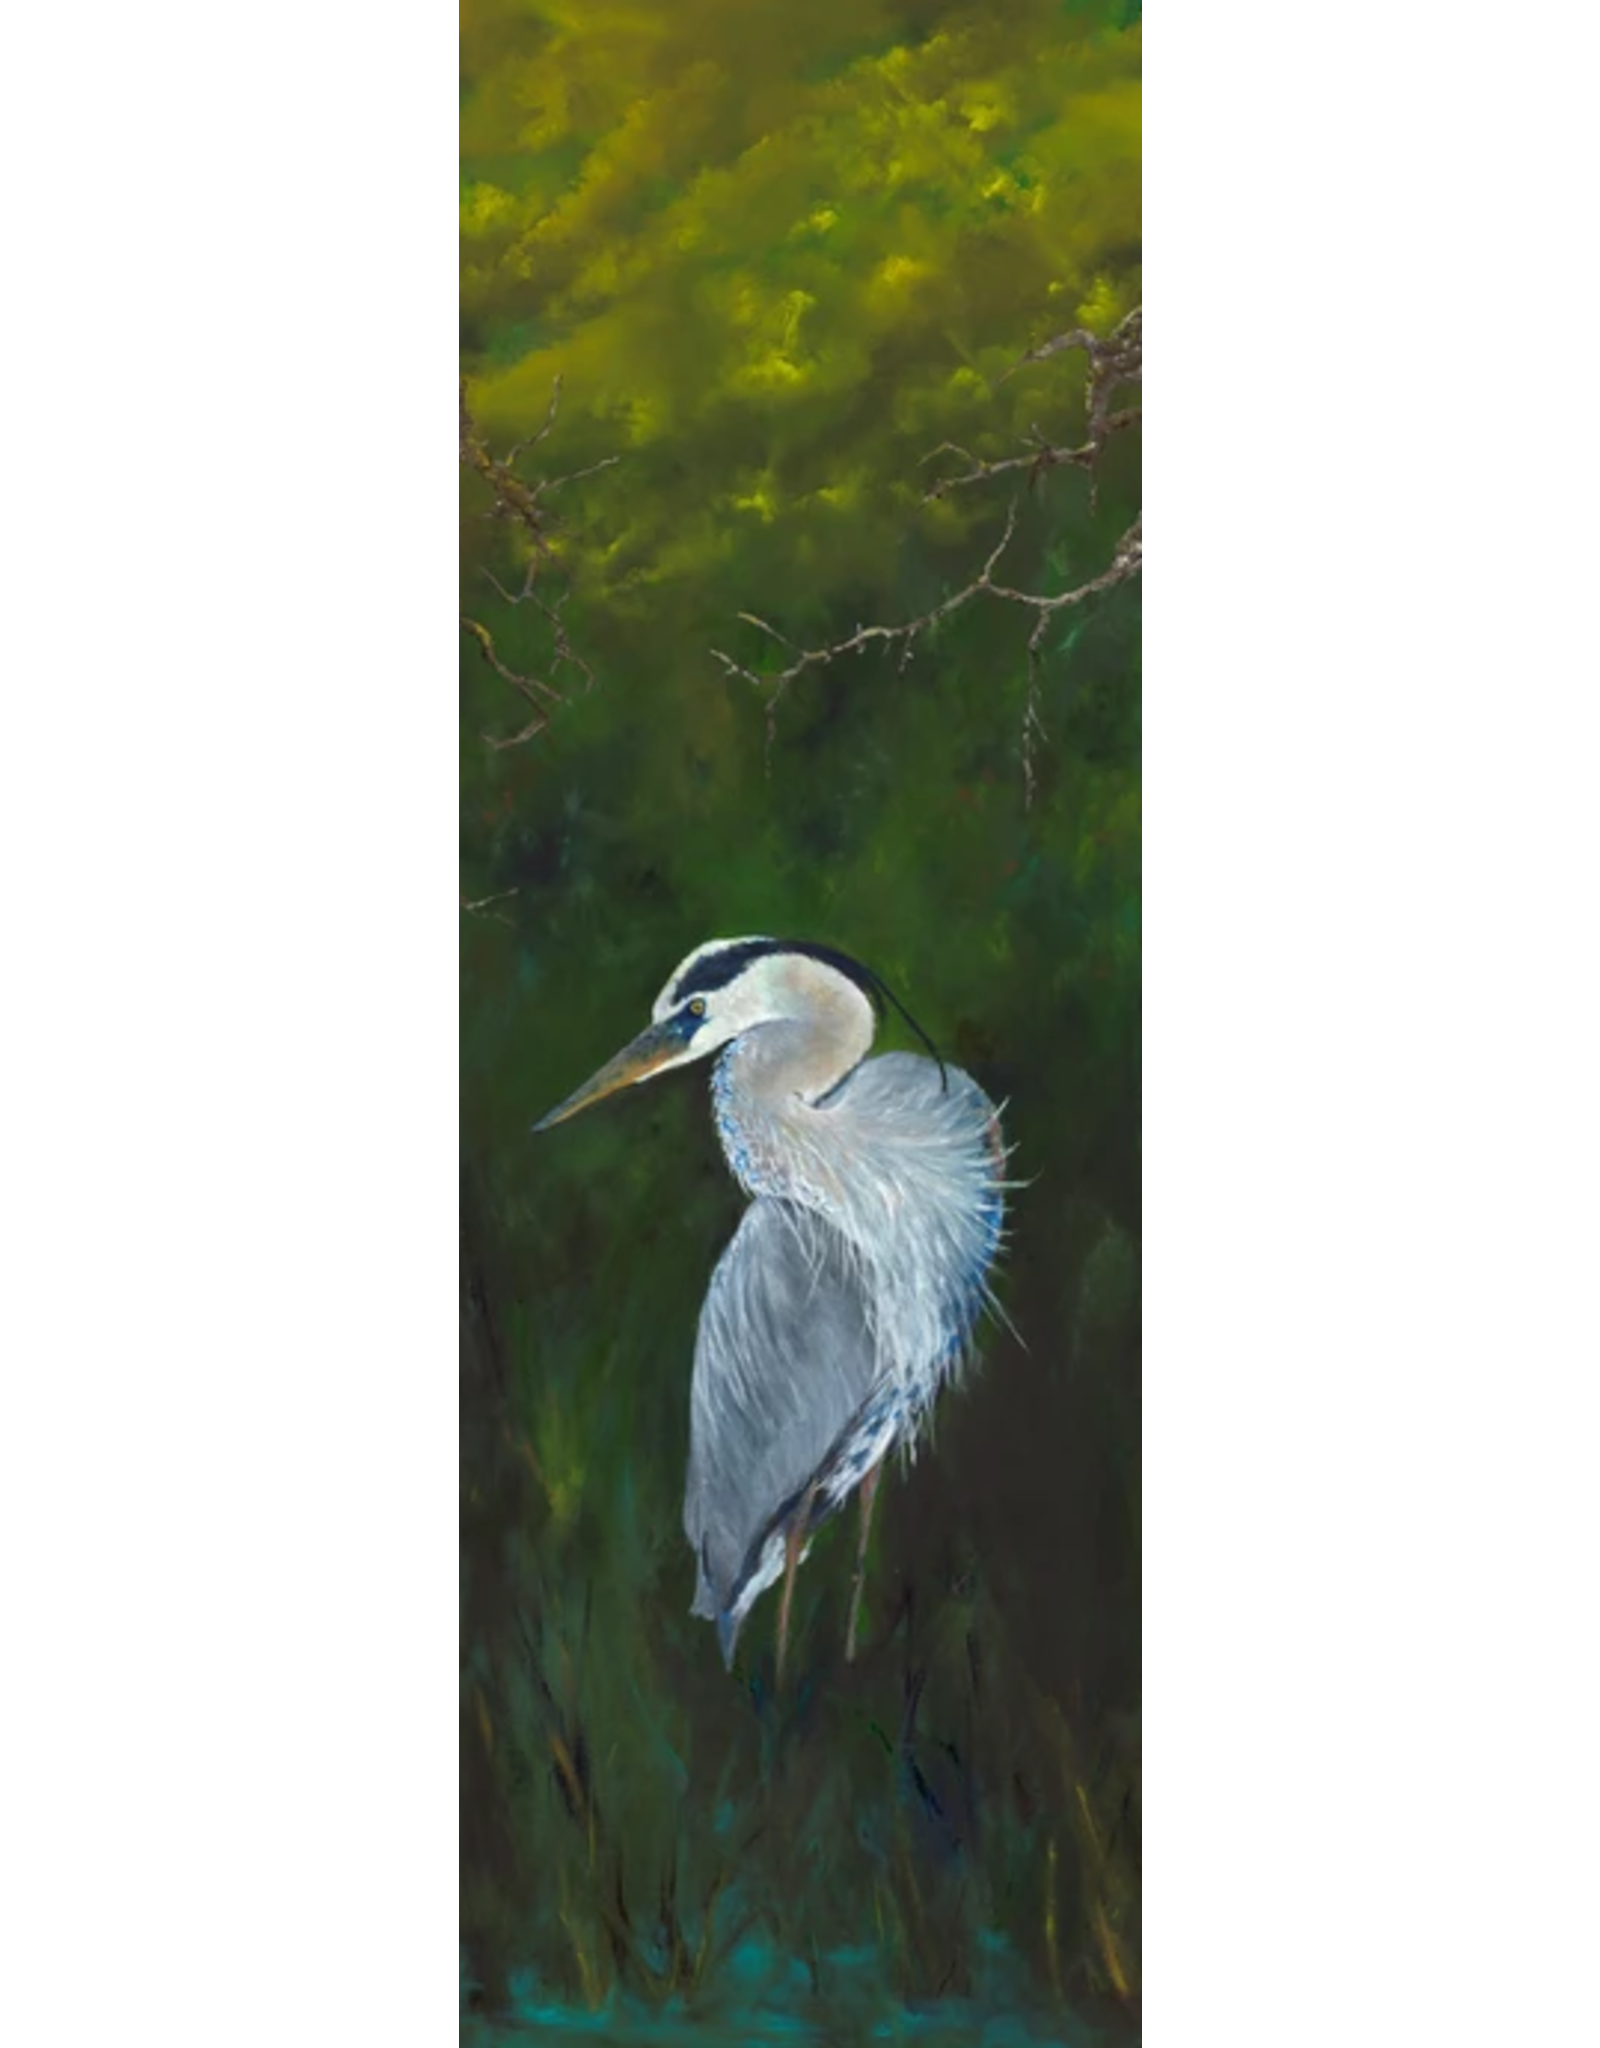 "Guy LeFebvre Great Blue Heron 5 (Giclee on Aluminum, 8x20"")"